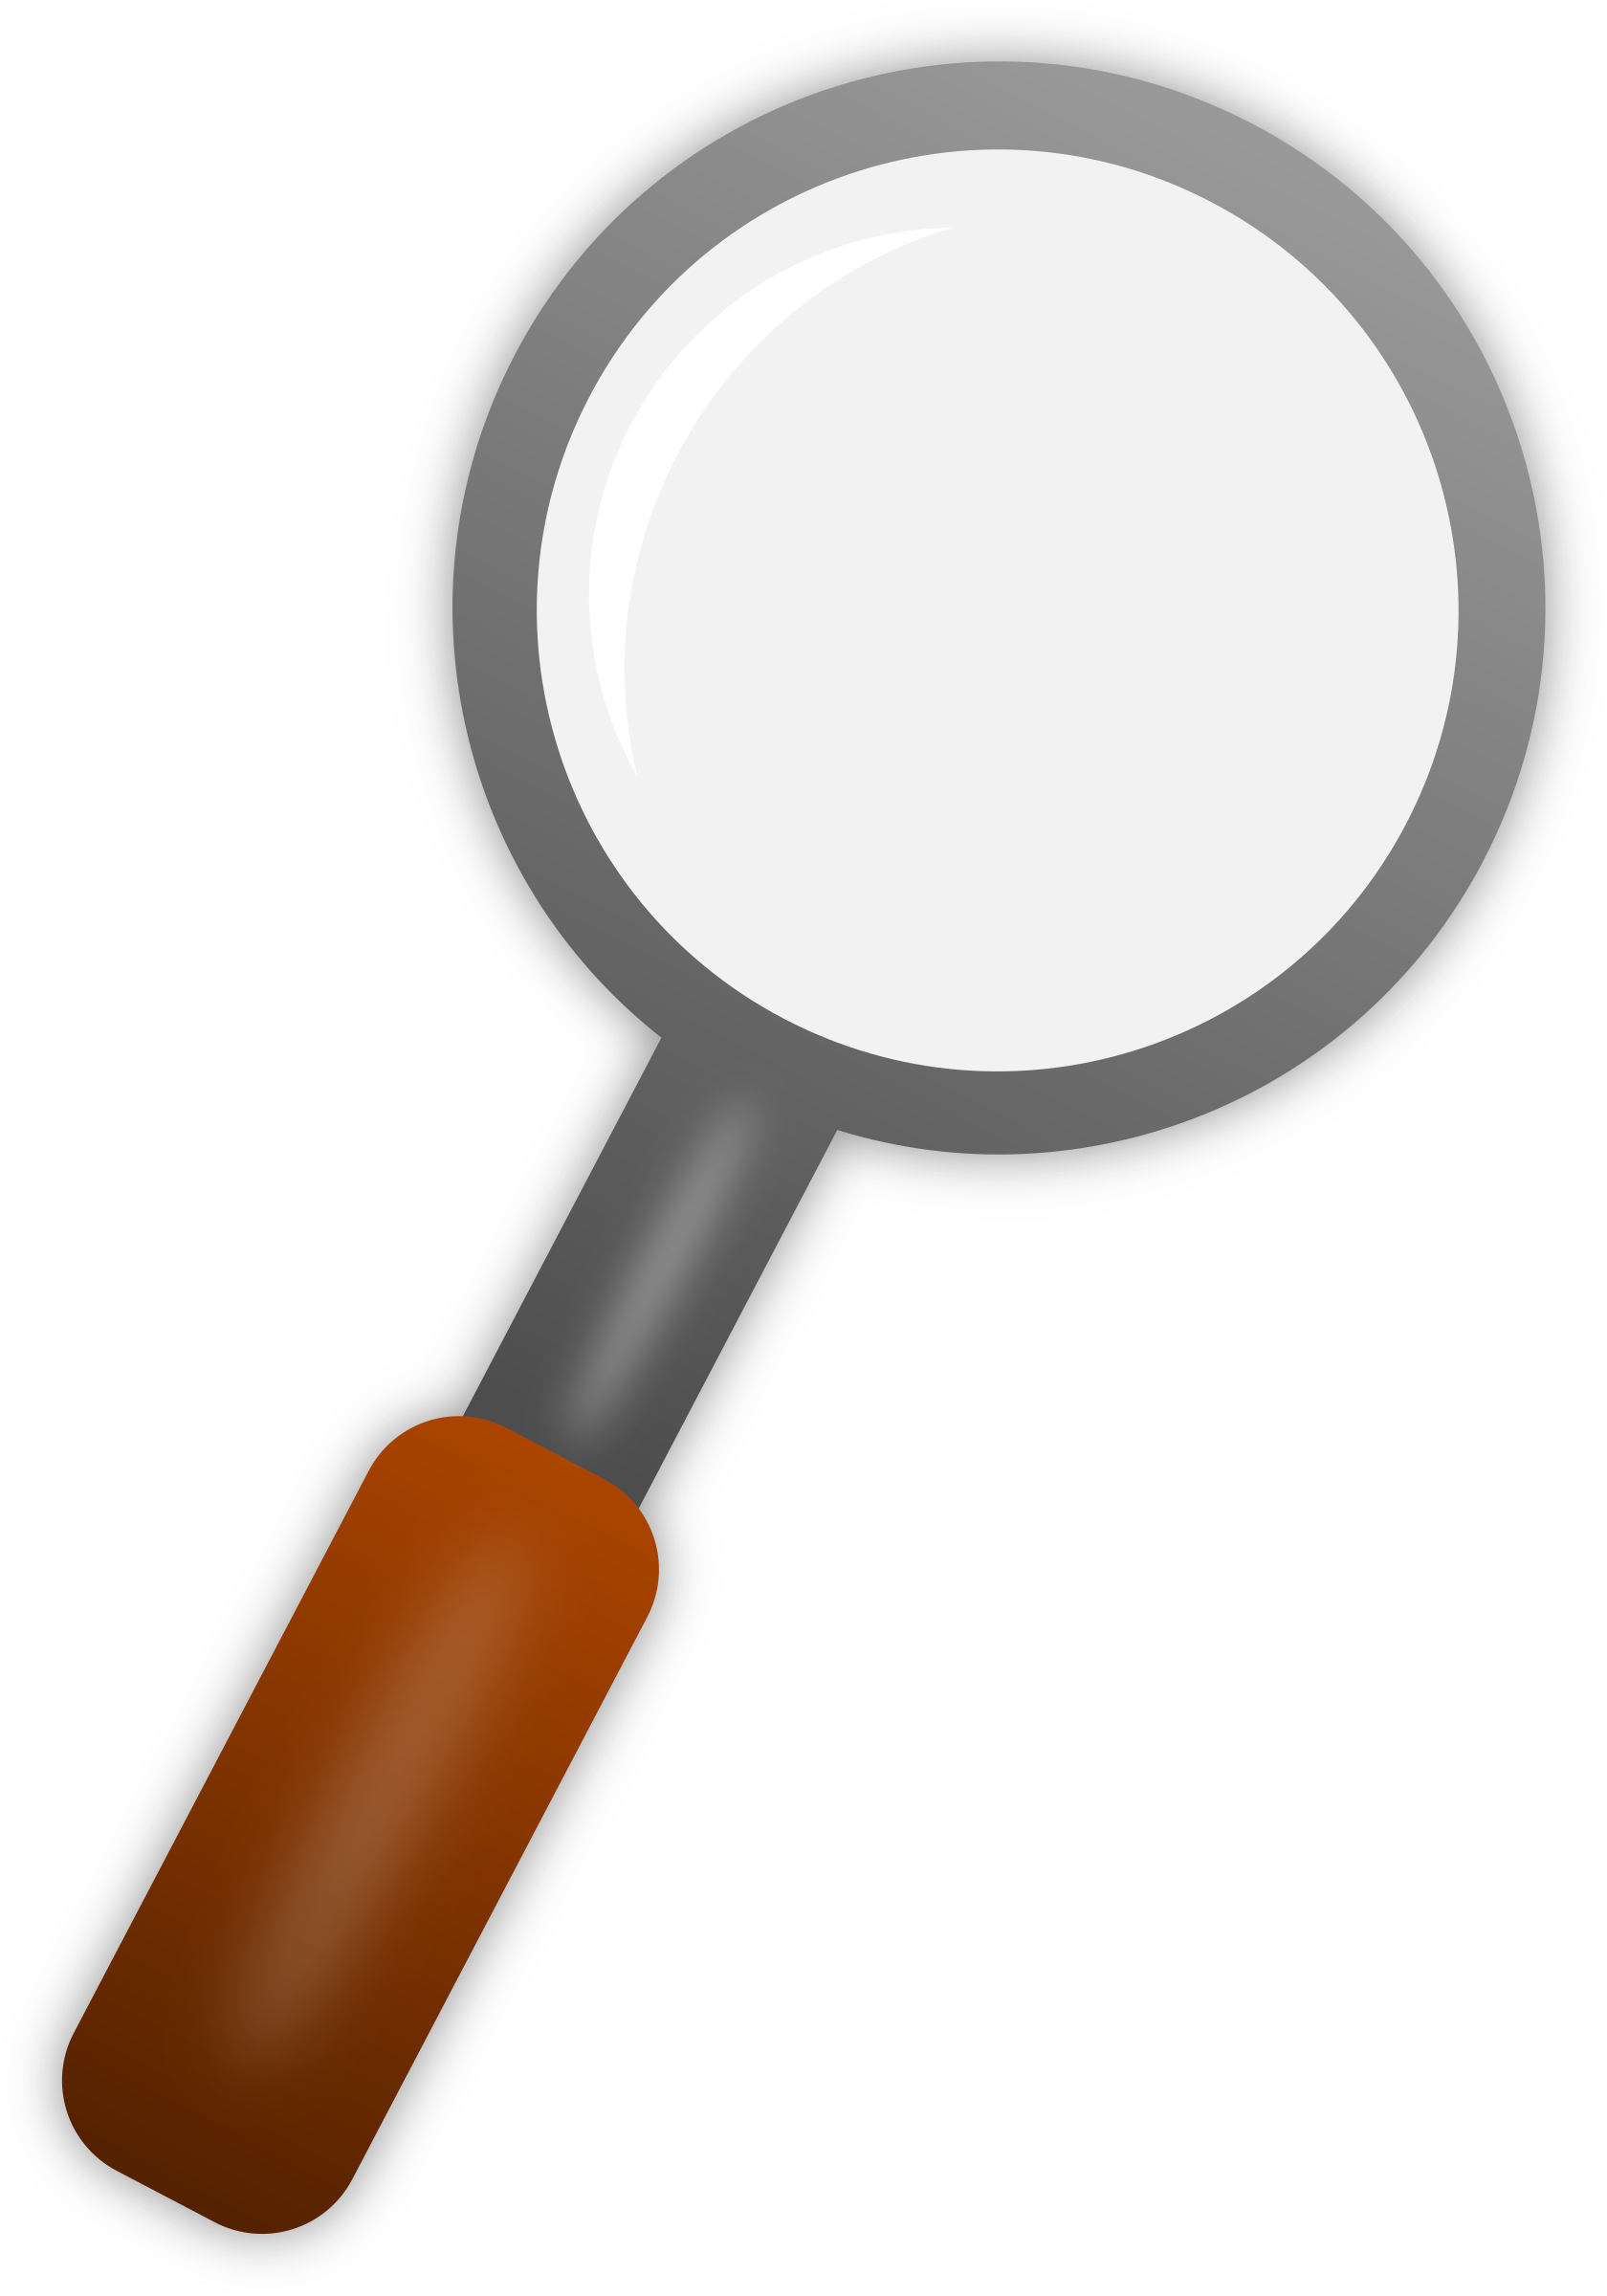 Big image png. Clipart people magnifying glass